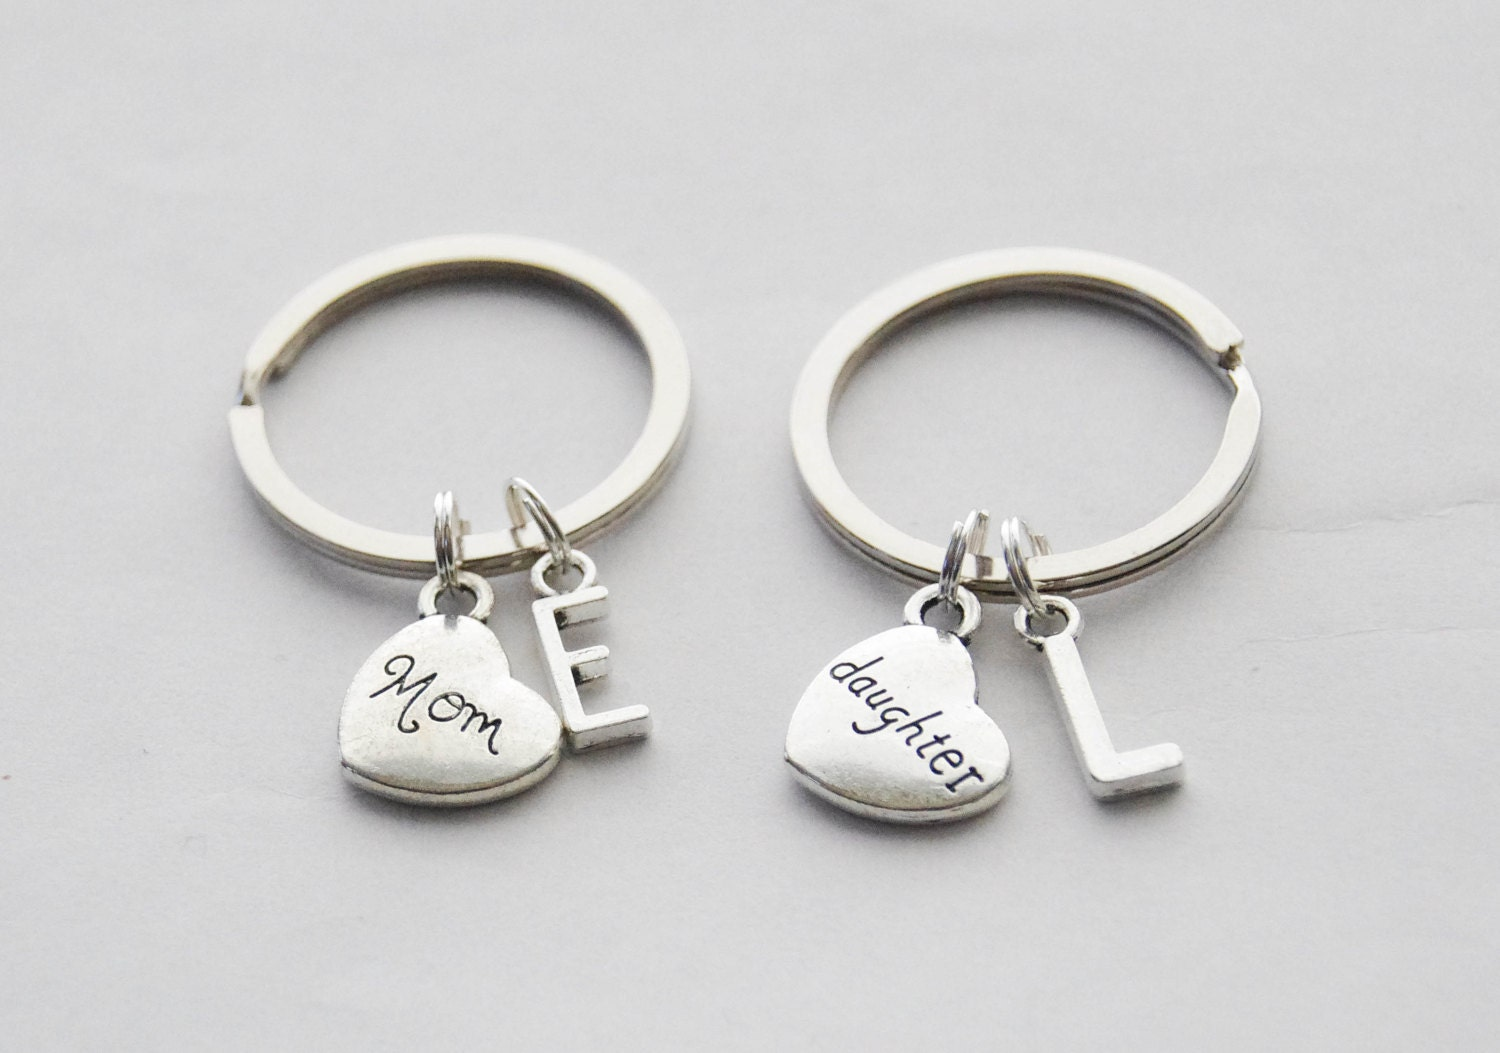 Mom Daughter Key Ring Set 2 Heart Keychains Gift Mother Keychain